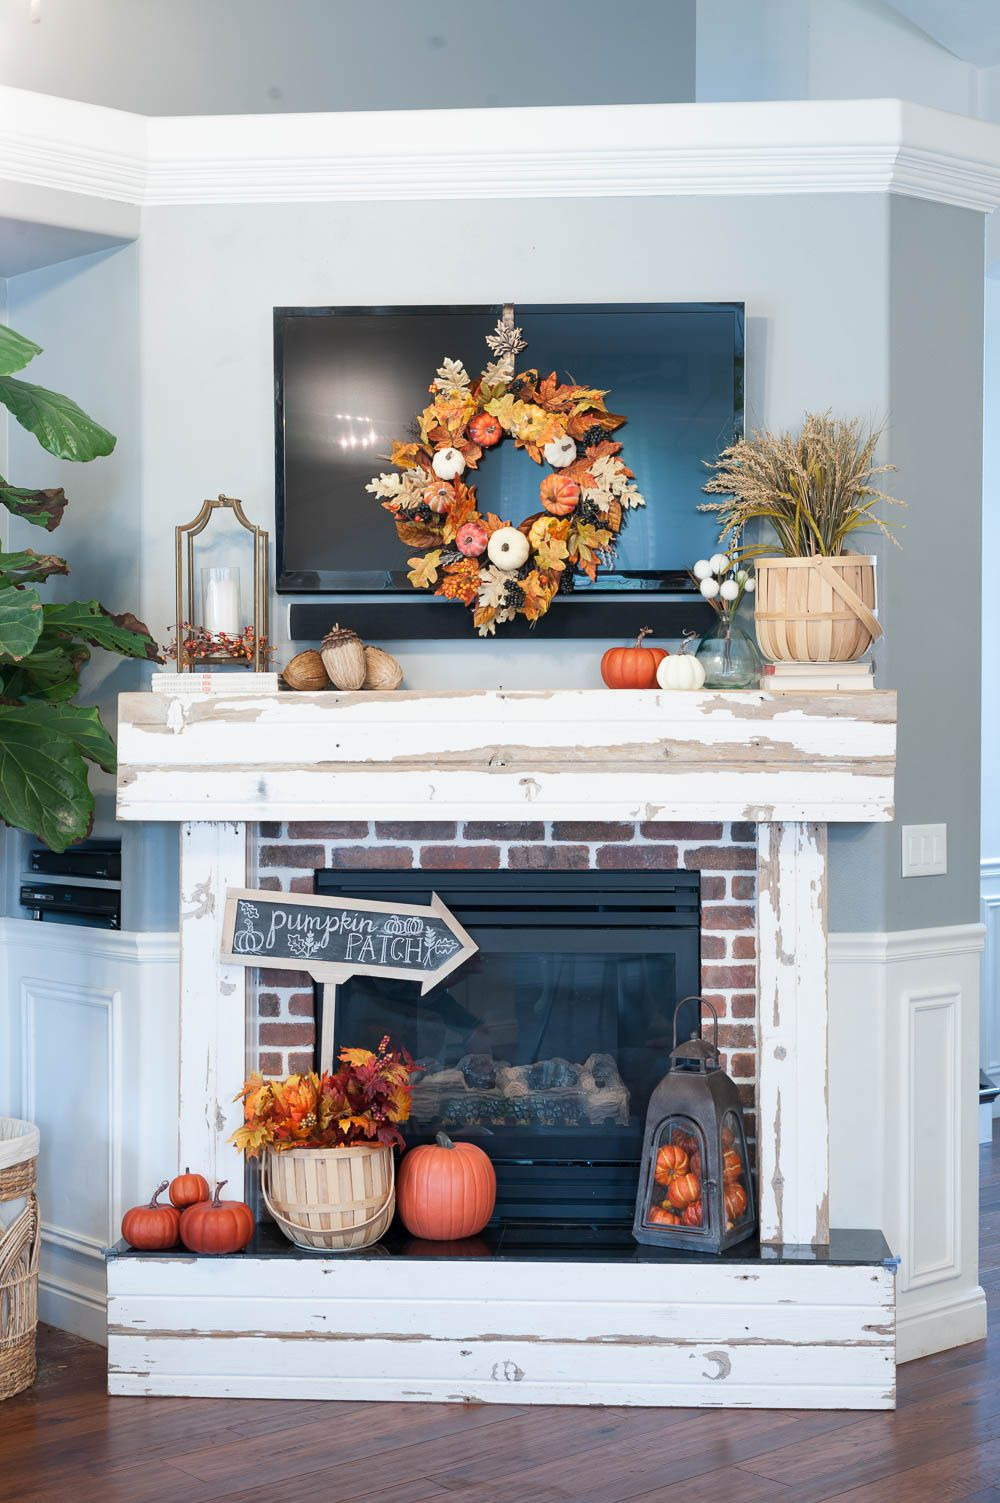 GroB Fall Mantle Decorating Ideas With Pumpkins Leaves And Wheat